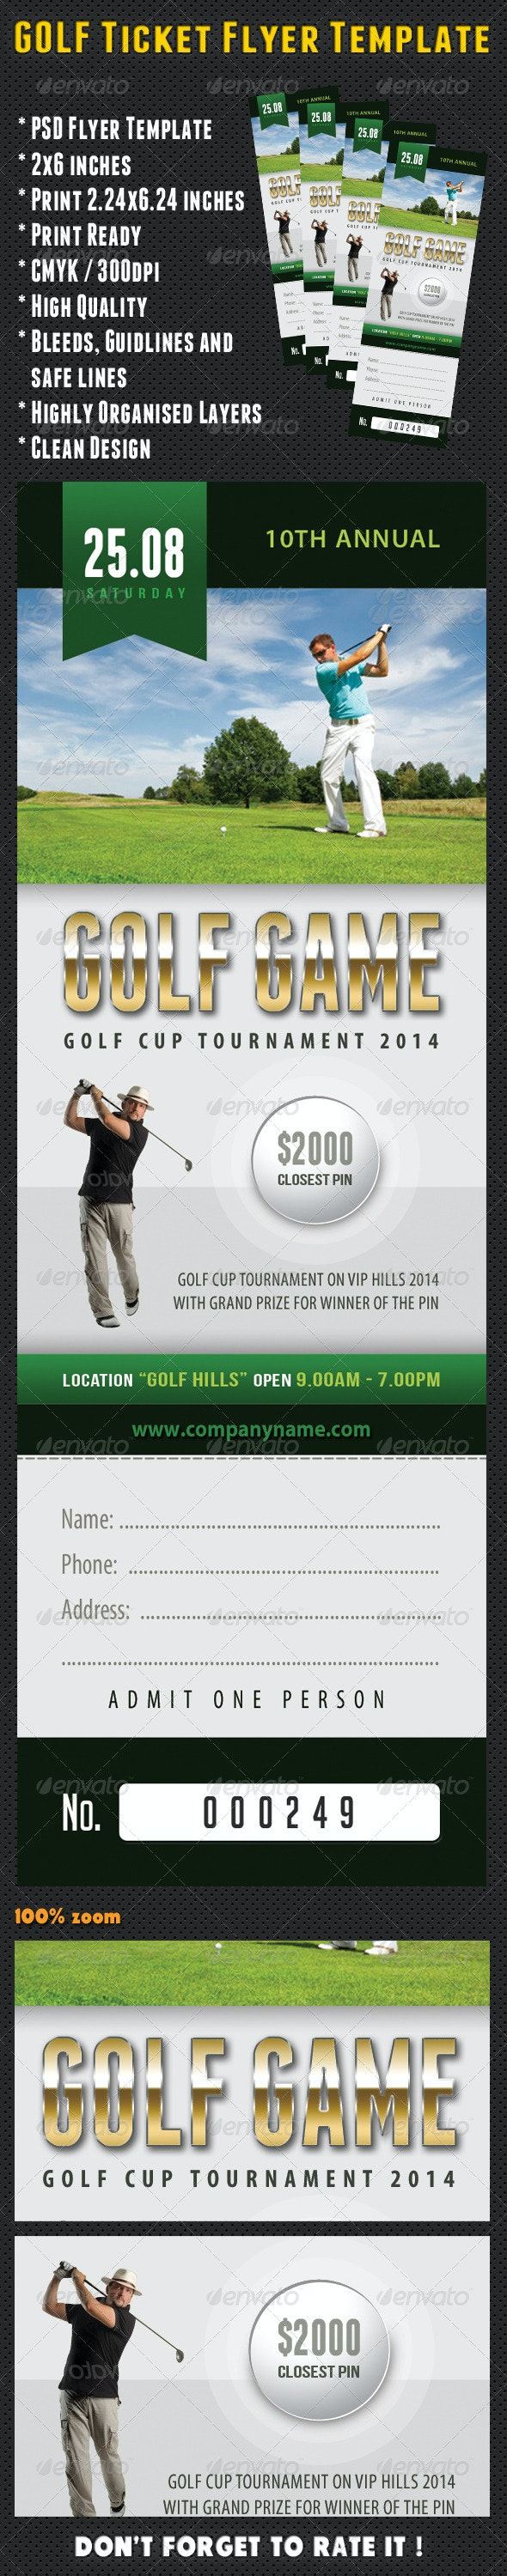 Golf Ticket Template 03 - Sports Events